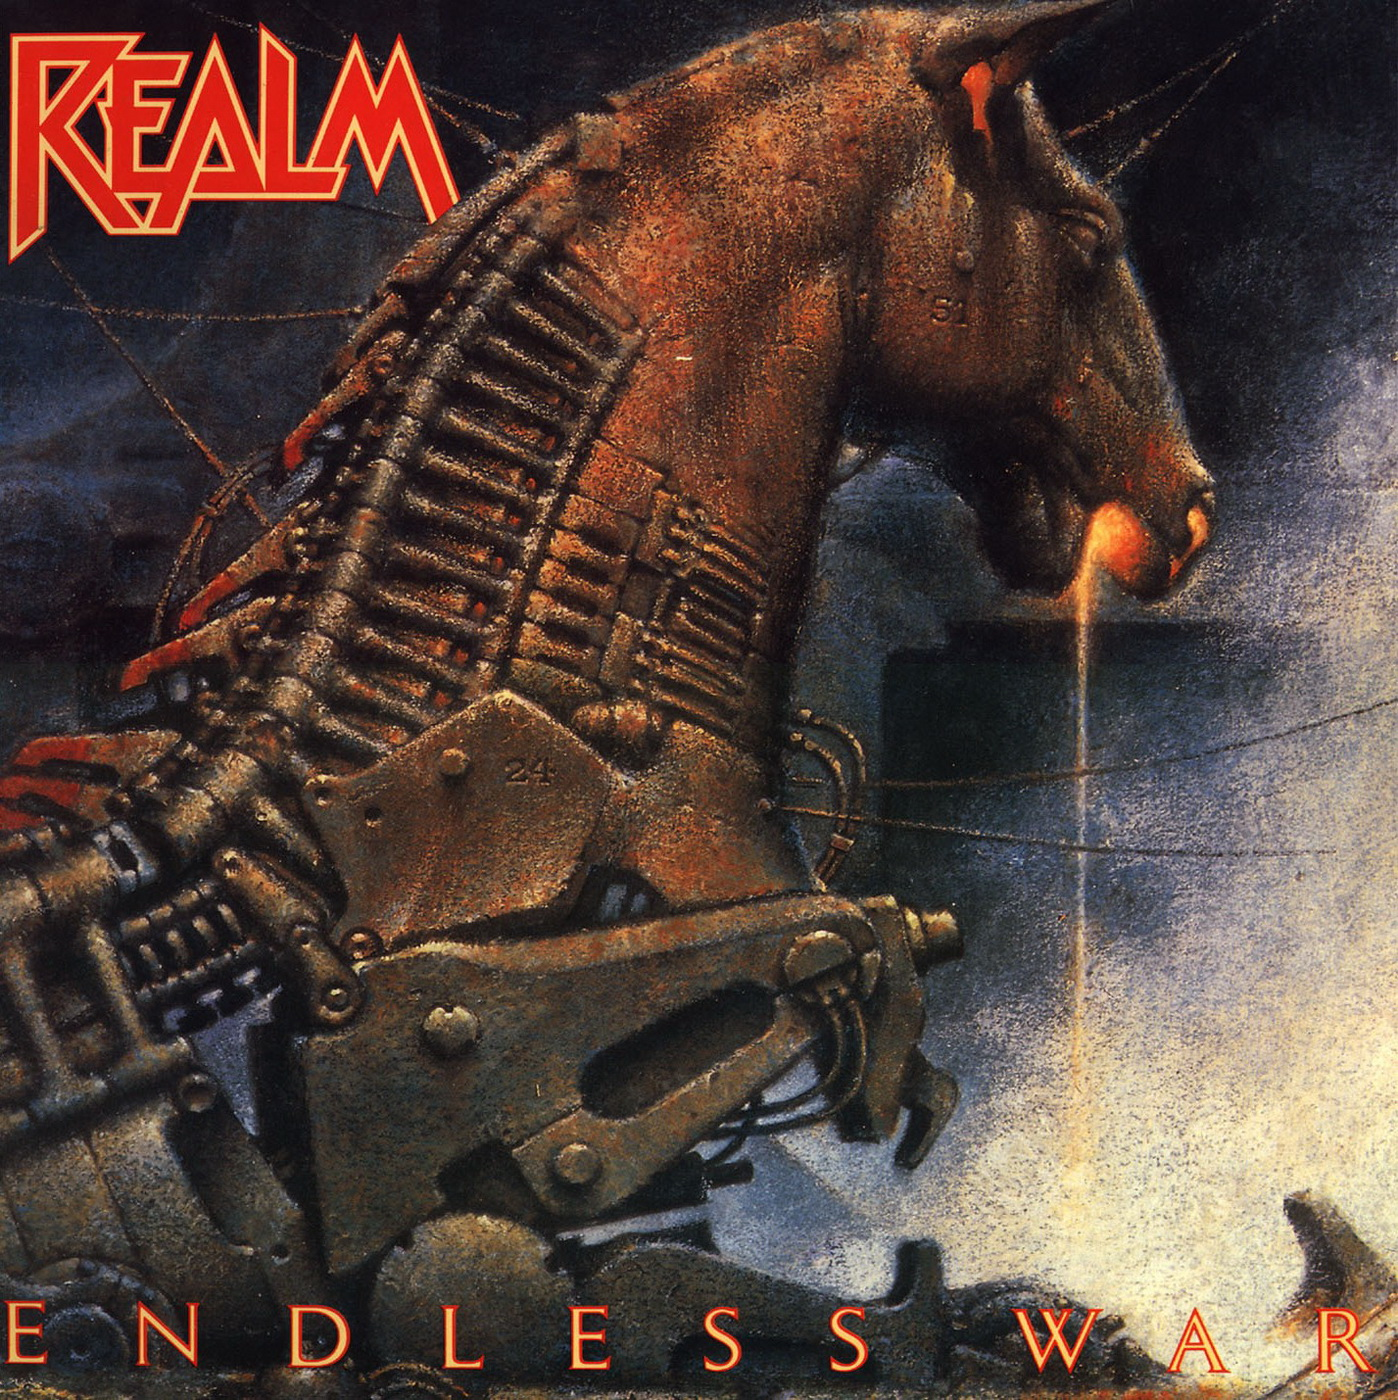 Realm - Endless War - 1988